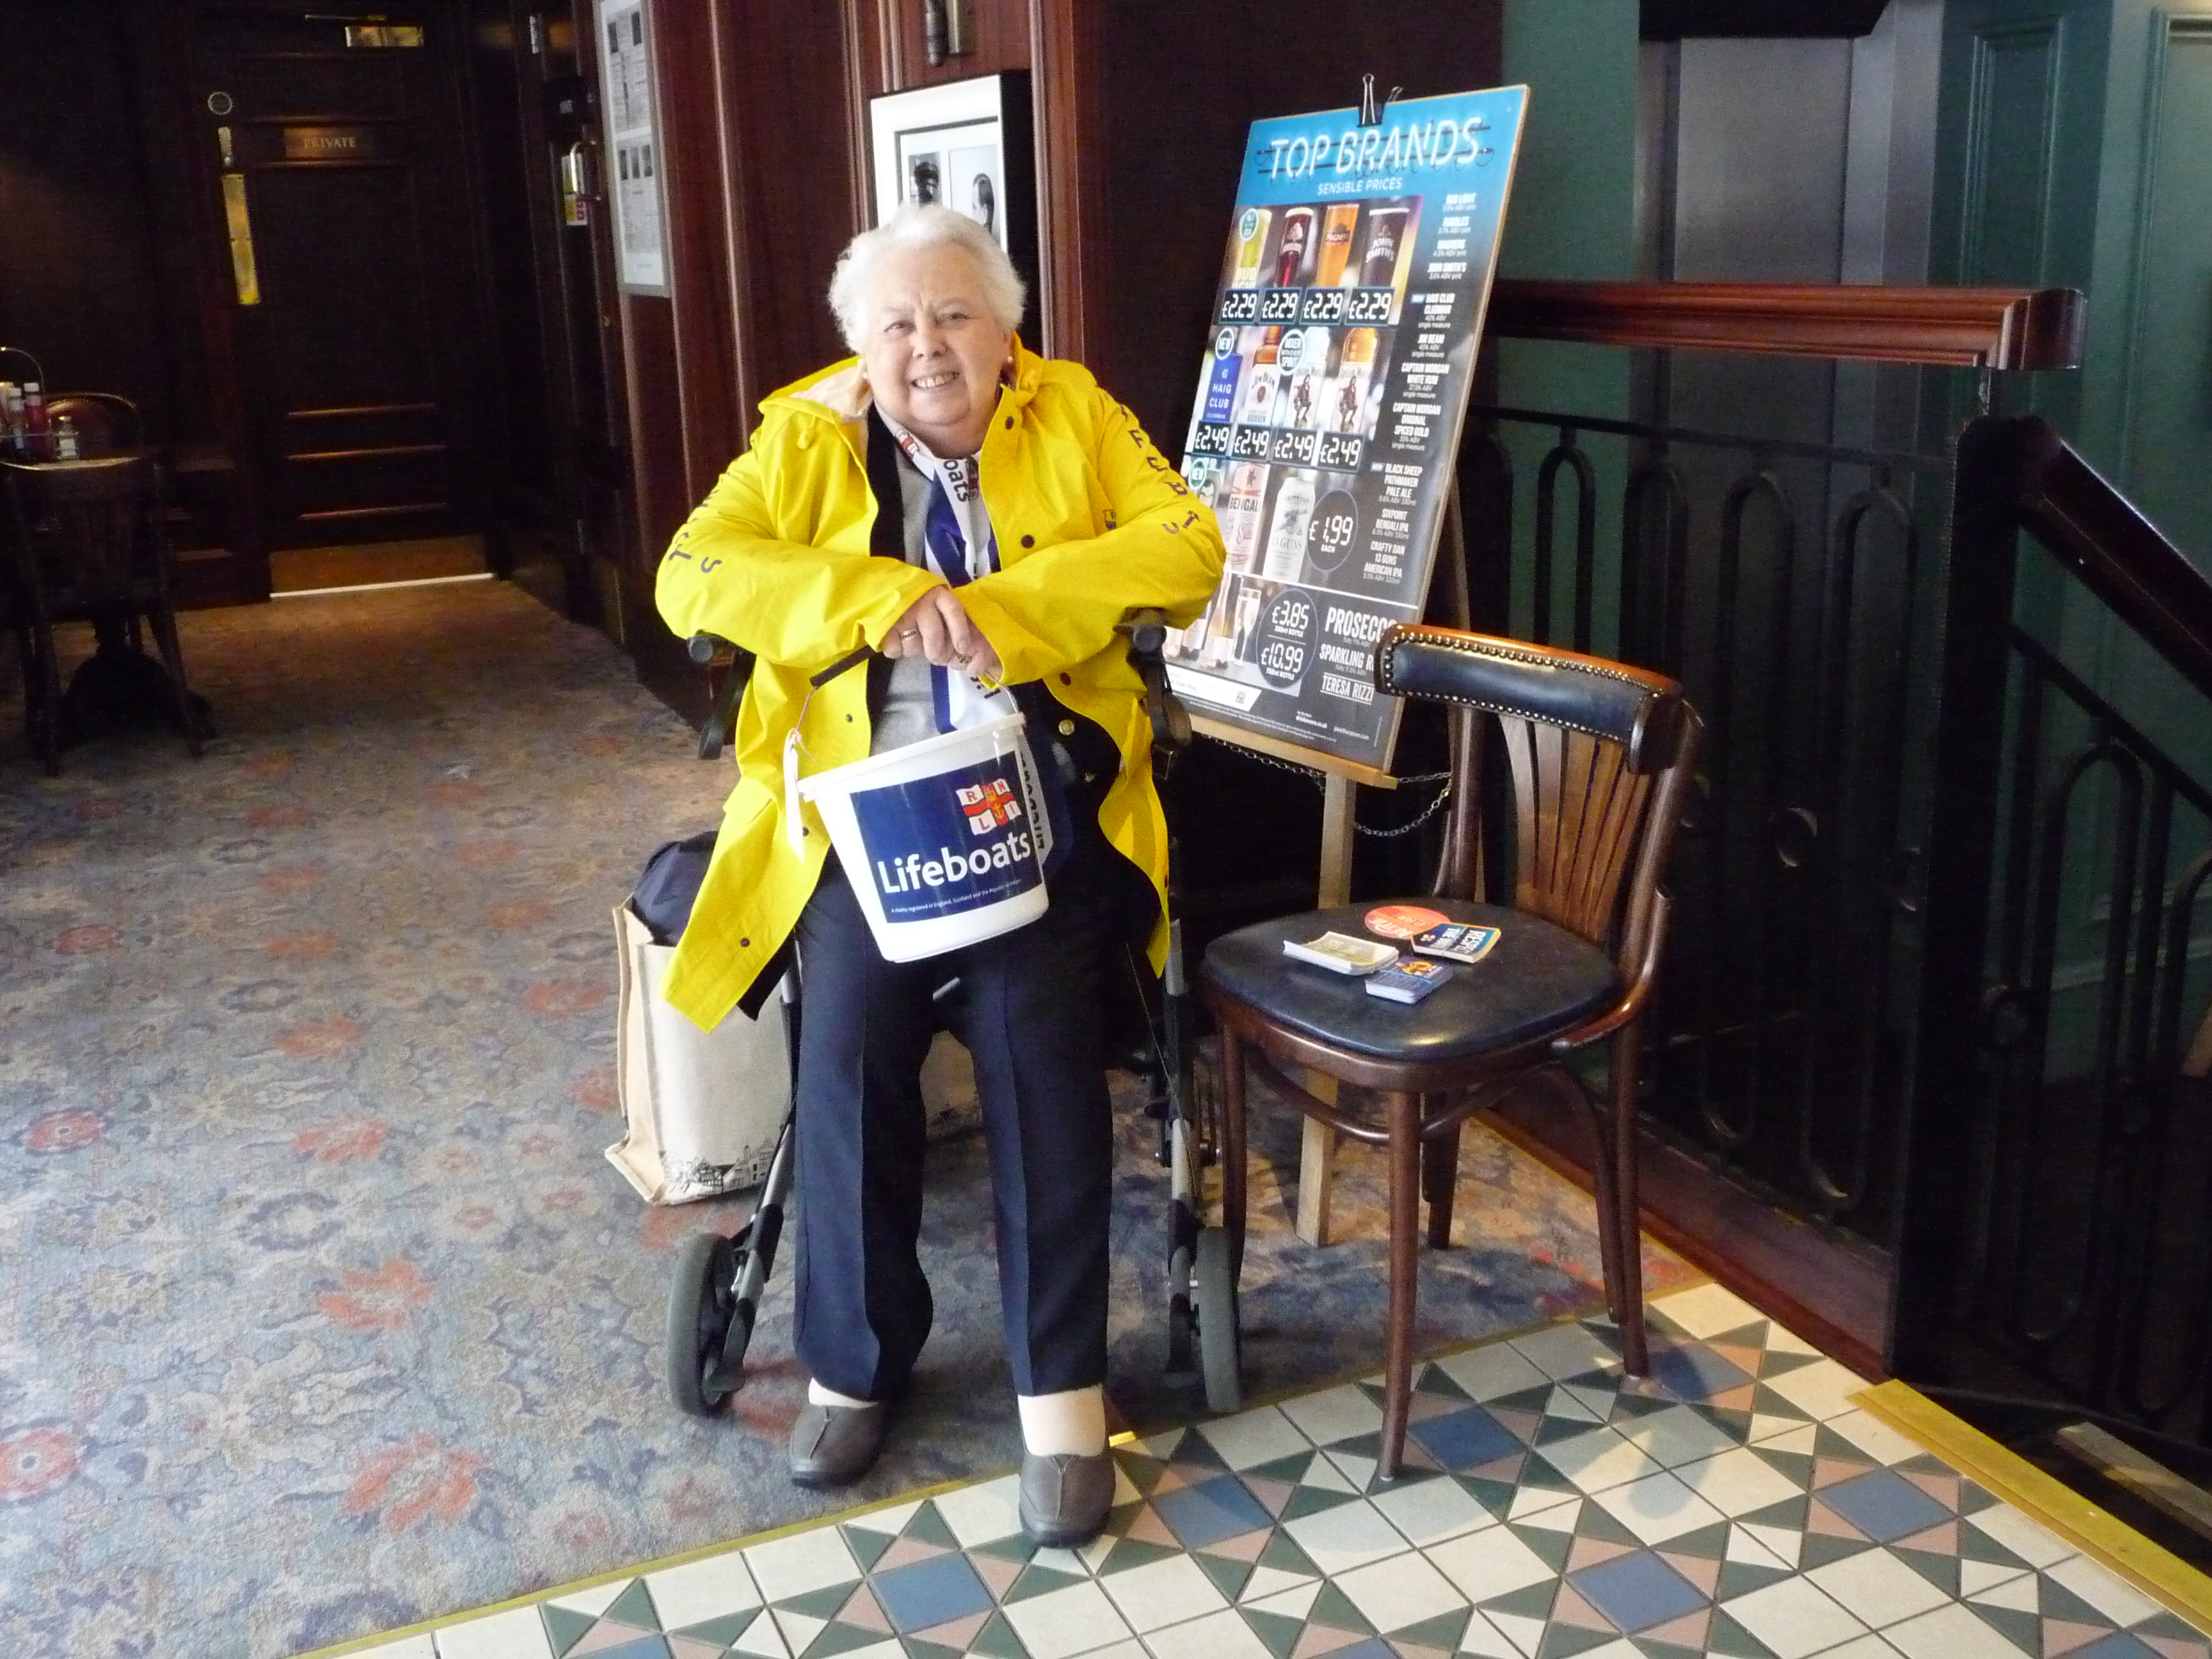 Elsie fund raising earlier this year in Wetherspoons Ramsgate